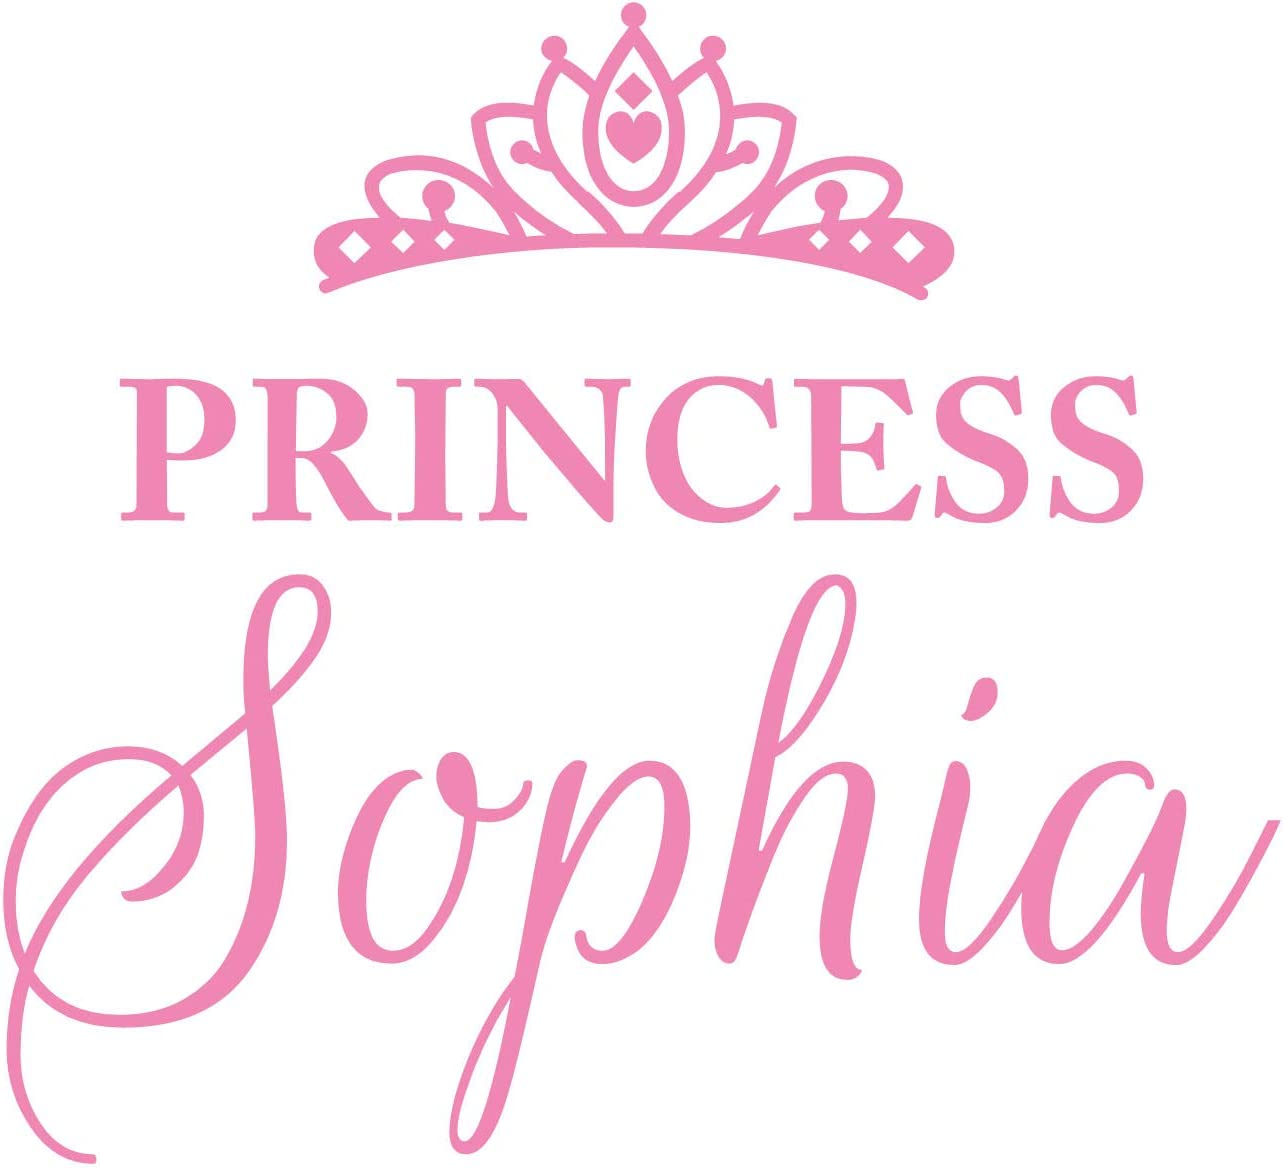 Princess Sophia Wall Decal is a Vinyl Wall Decal Displaying a Room Girl Decor, a Great Wall Art, Name Sign or Accessories for a Girl Bedroom, Similar to Stickers and Posters - Soft Pink